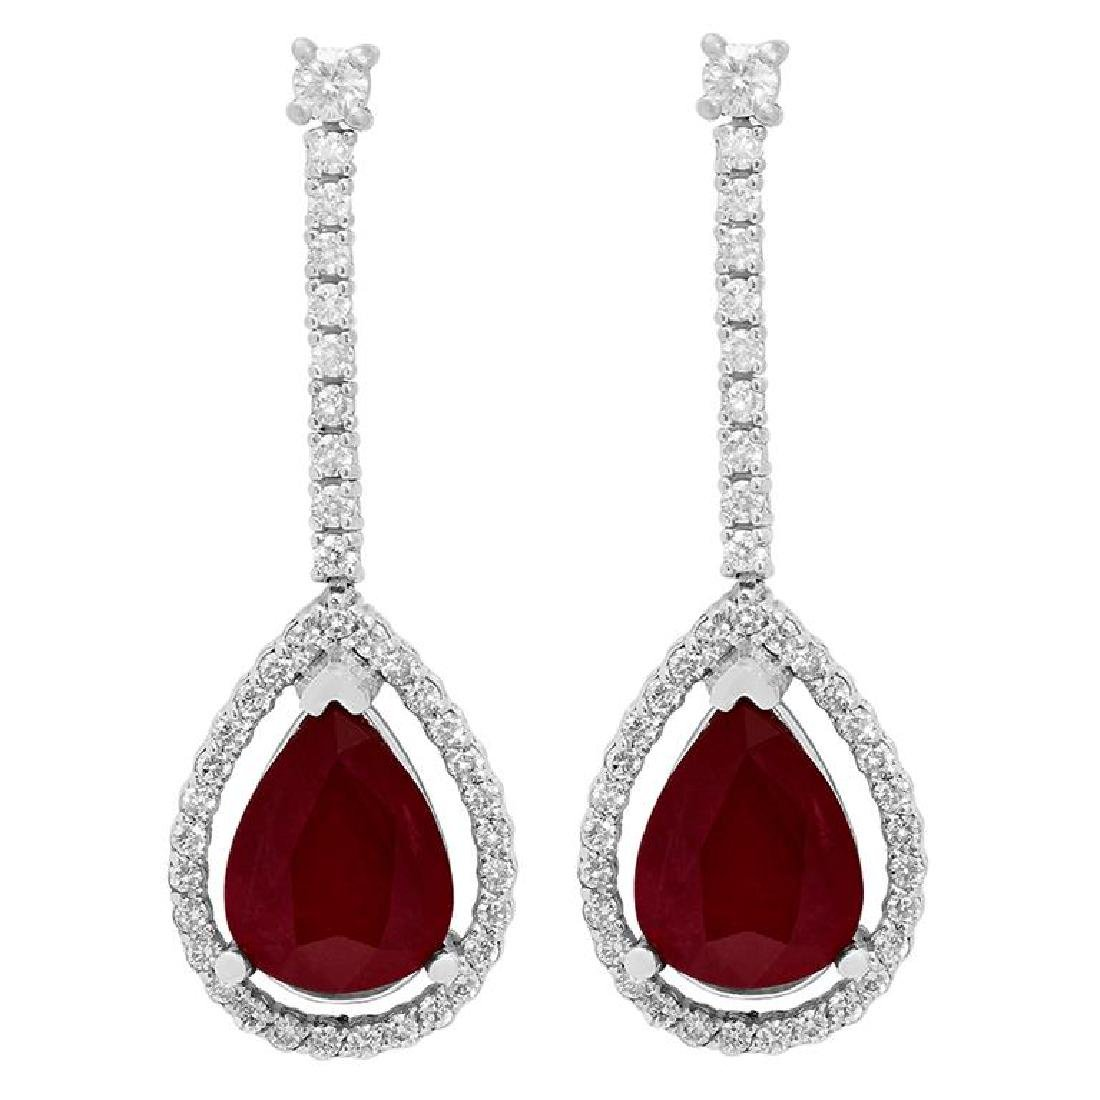 14k White Gold 6.41ct Ruby 0.89ct Diamond Earrings